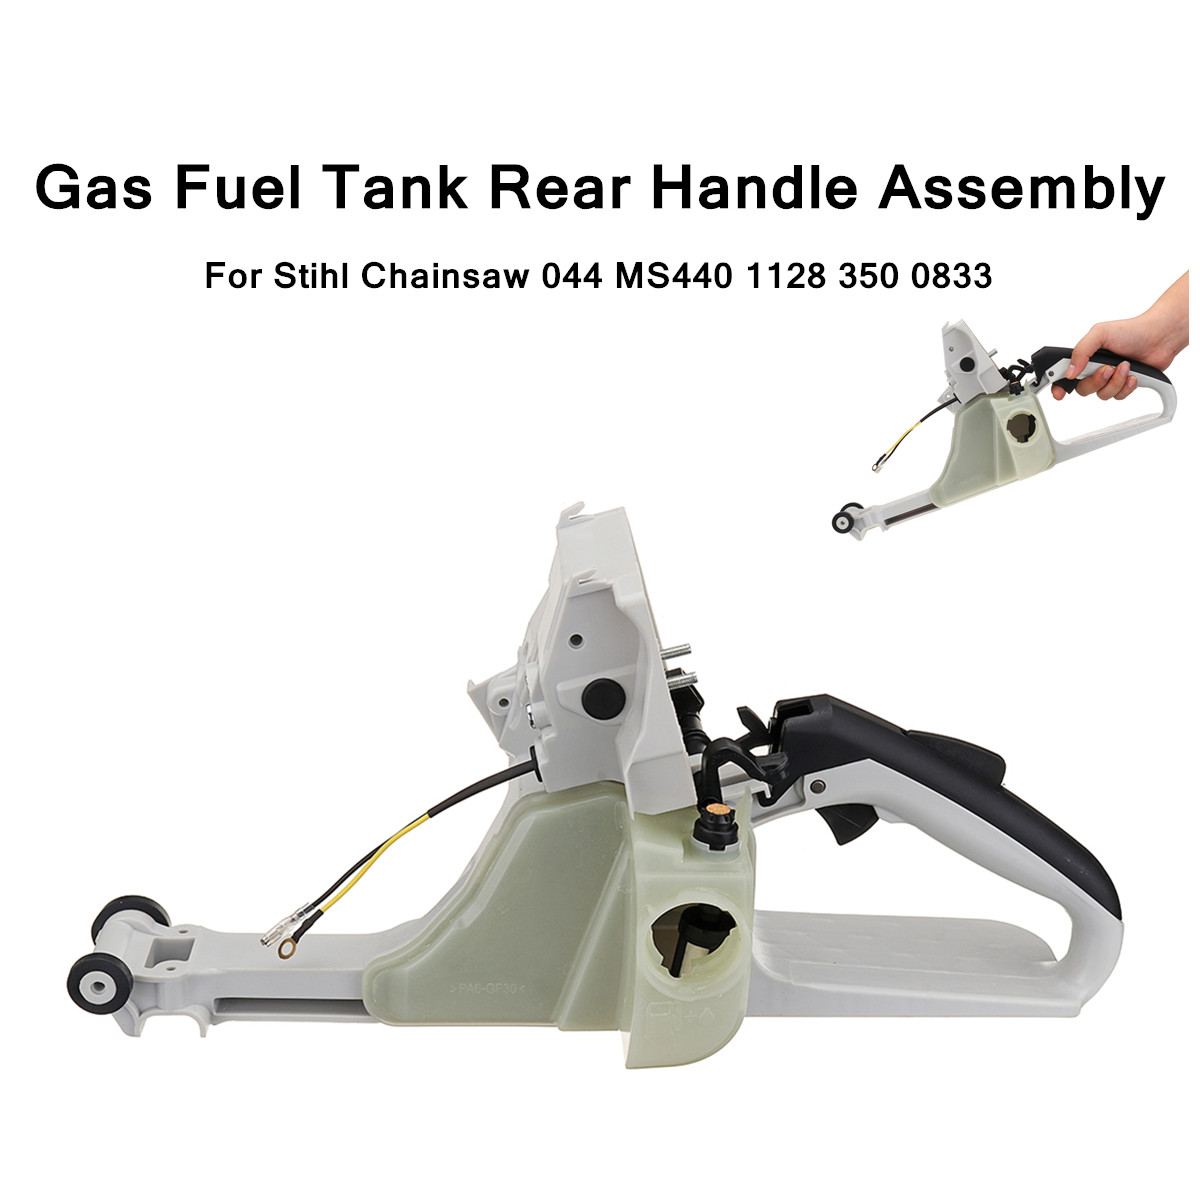 1128 350 0833 Gas Fuel Tank Rear Handle Assembly For Stihl Chainsaw 044 MS440 Garden Power Tools 41x14.5x19cm chainsaw parts for stihl 044 046 ms440 ms460 carburetor carb oil fuel line filter 1128 120 0625